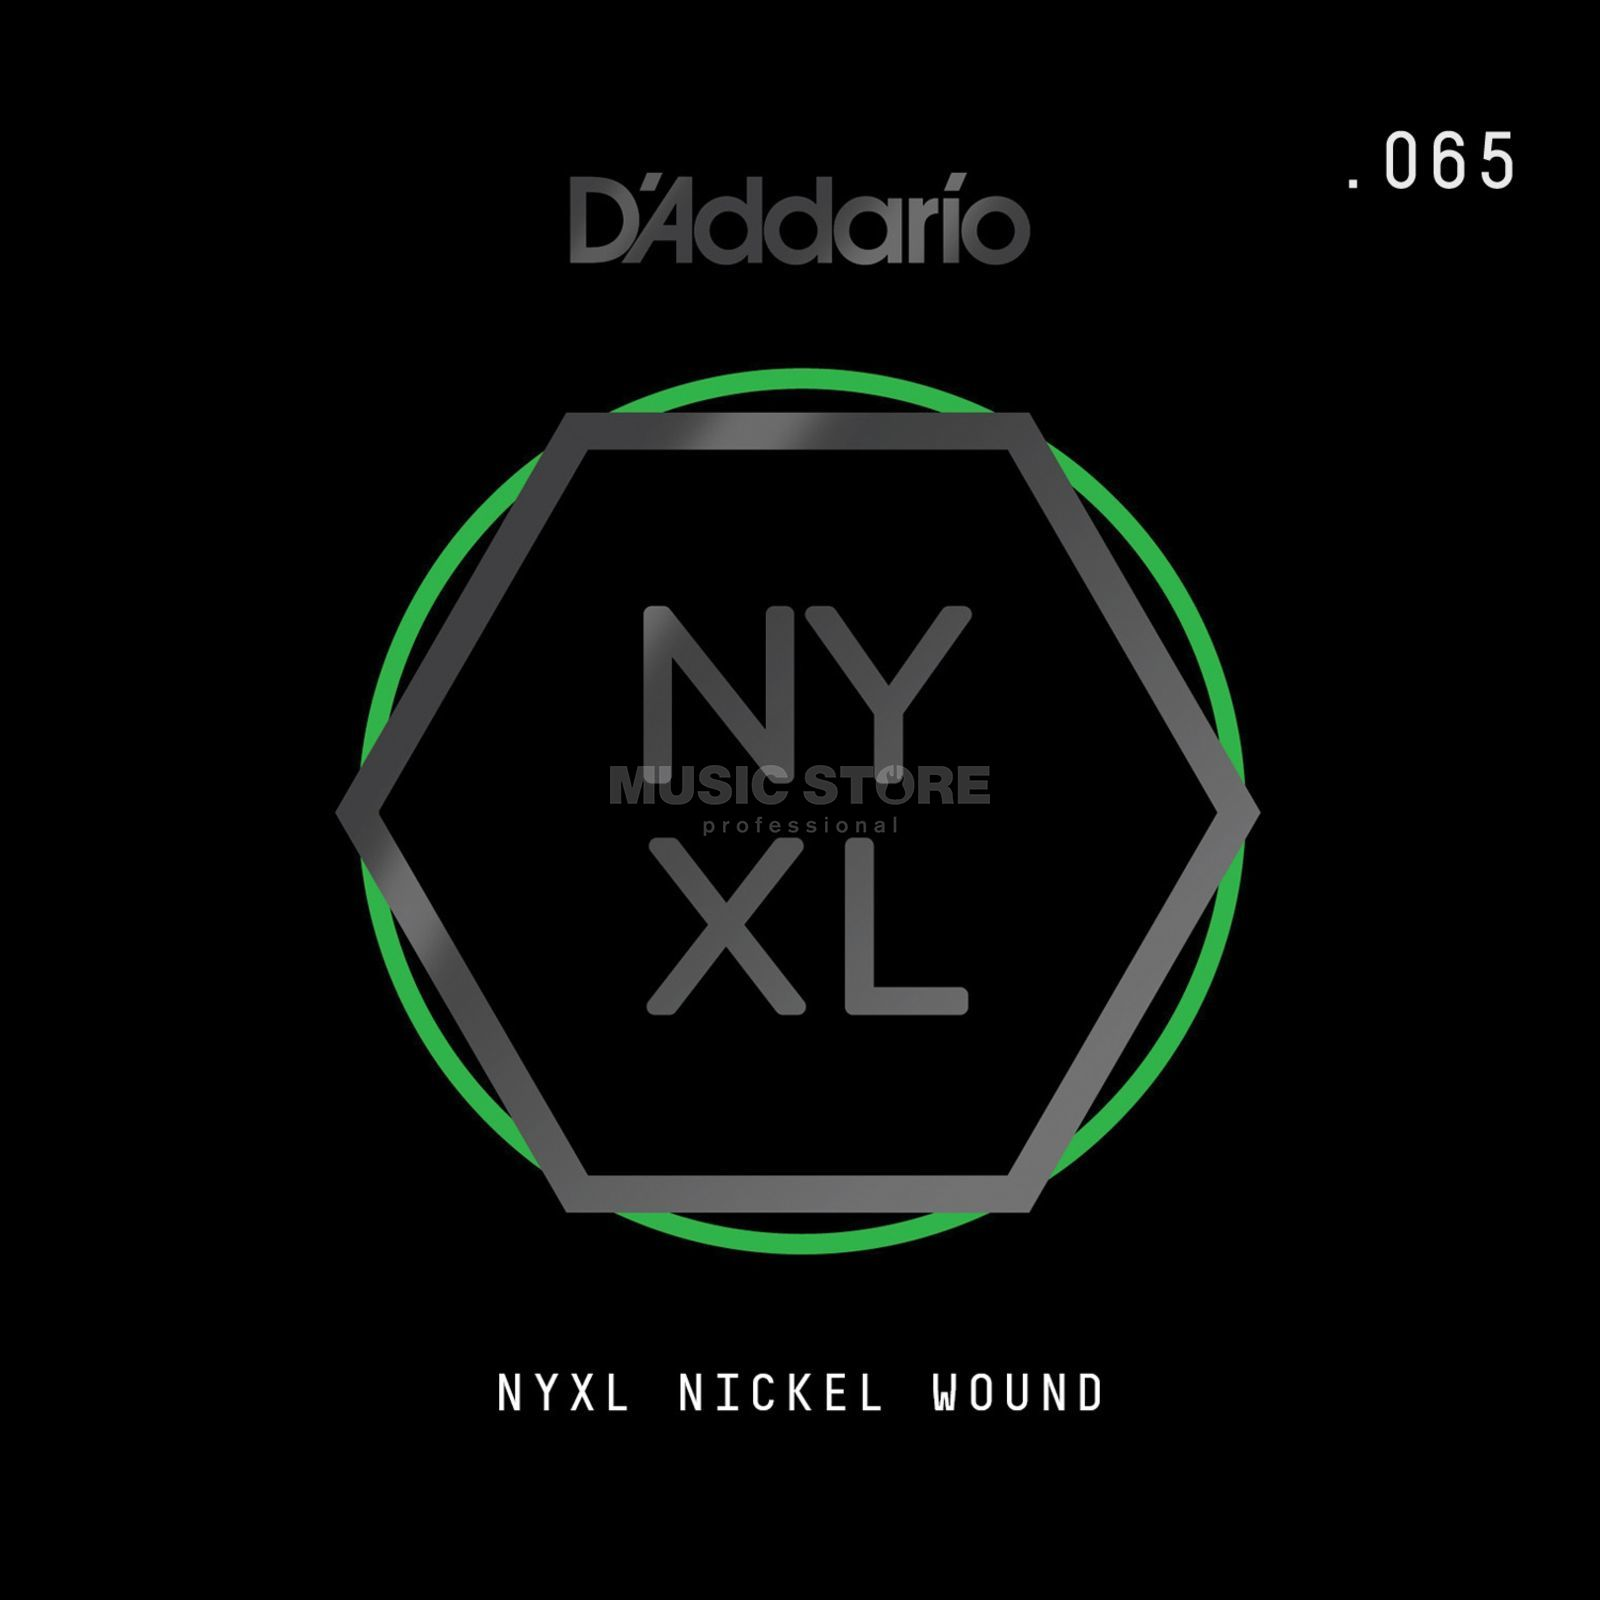 D'Addario NYNW065 Single String Nickel Wound Zdjęcie produktu